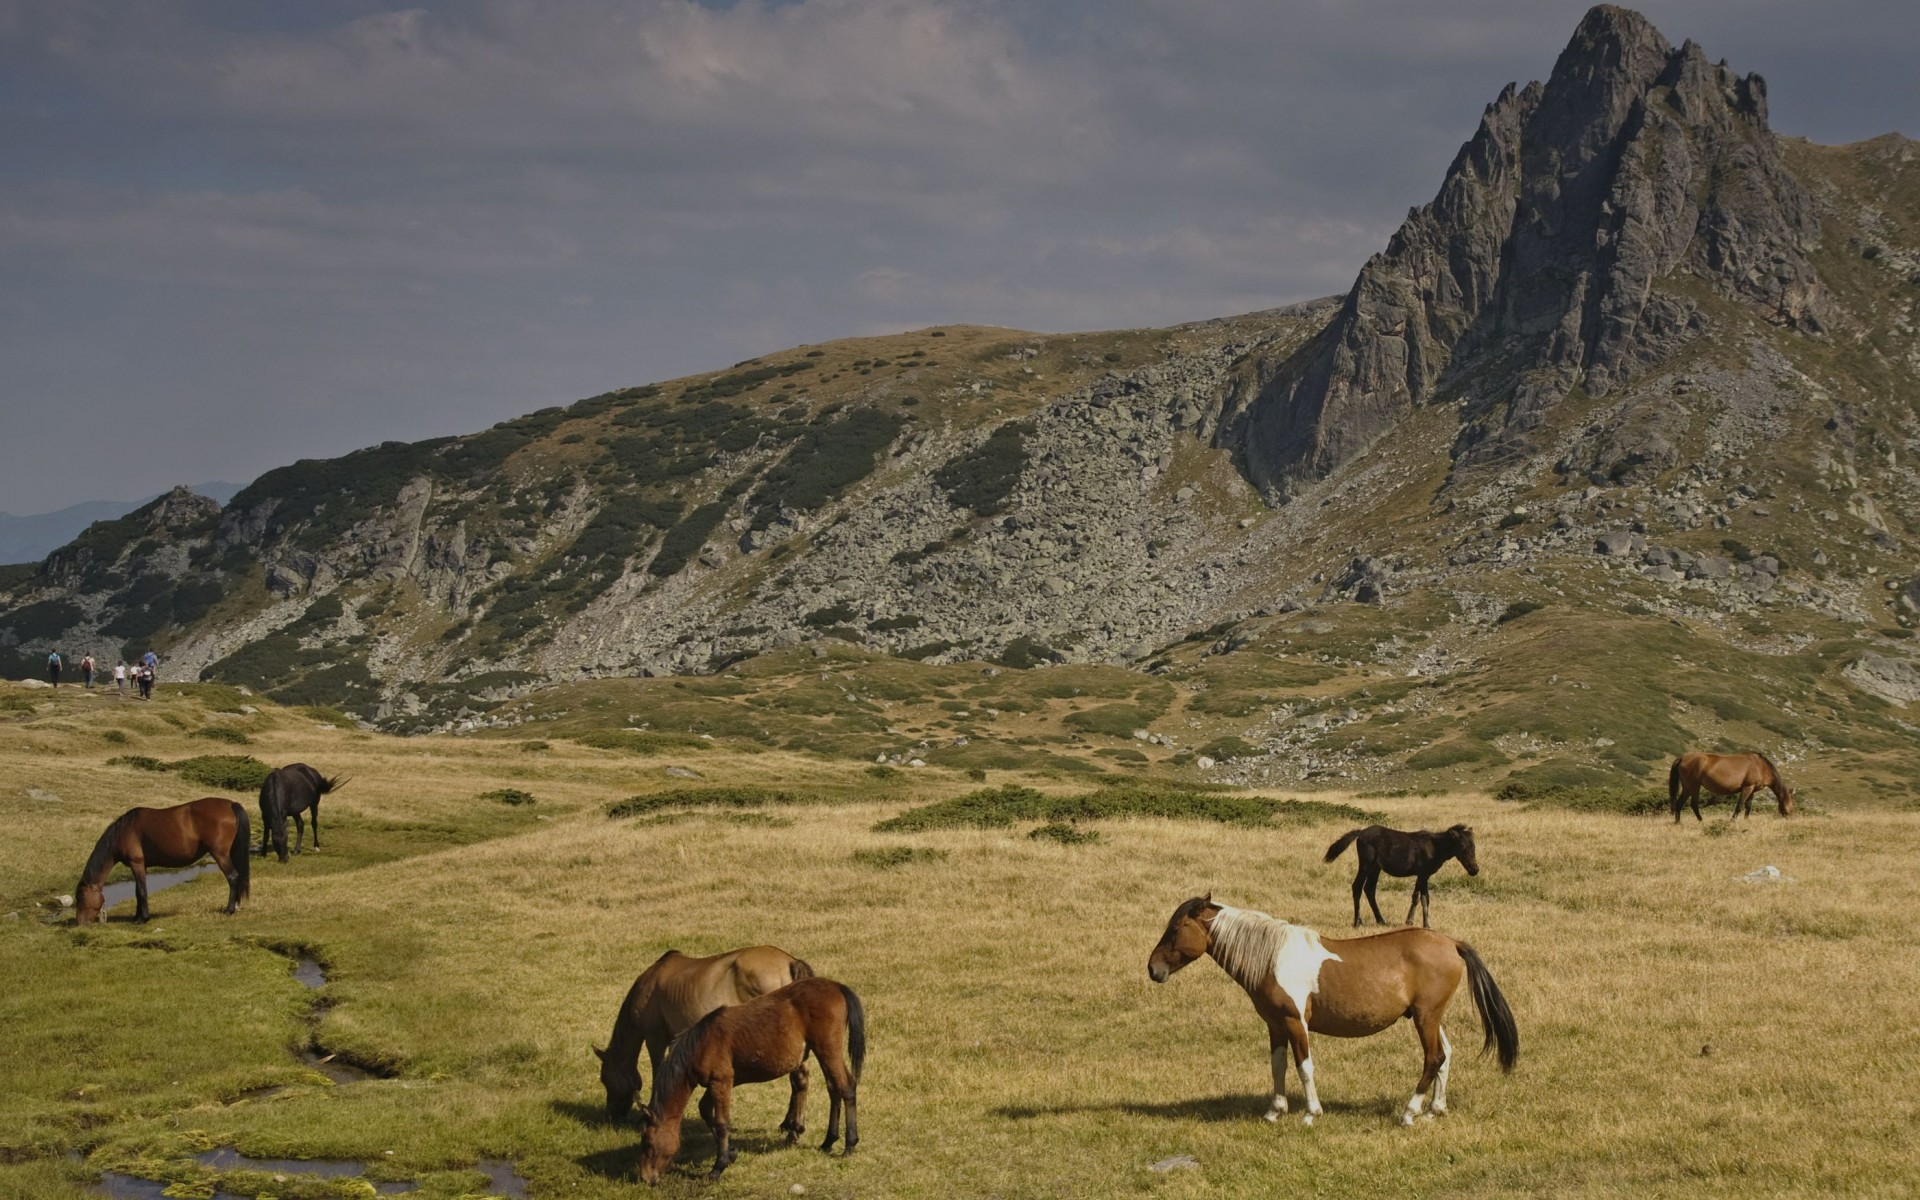 Animated Jungle Wallpaper Horses Rila Mountains Bulgaria Wallpapers Horses Rila